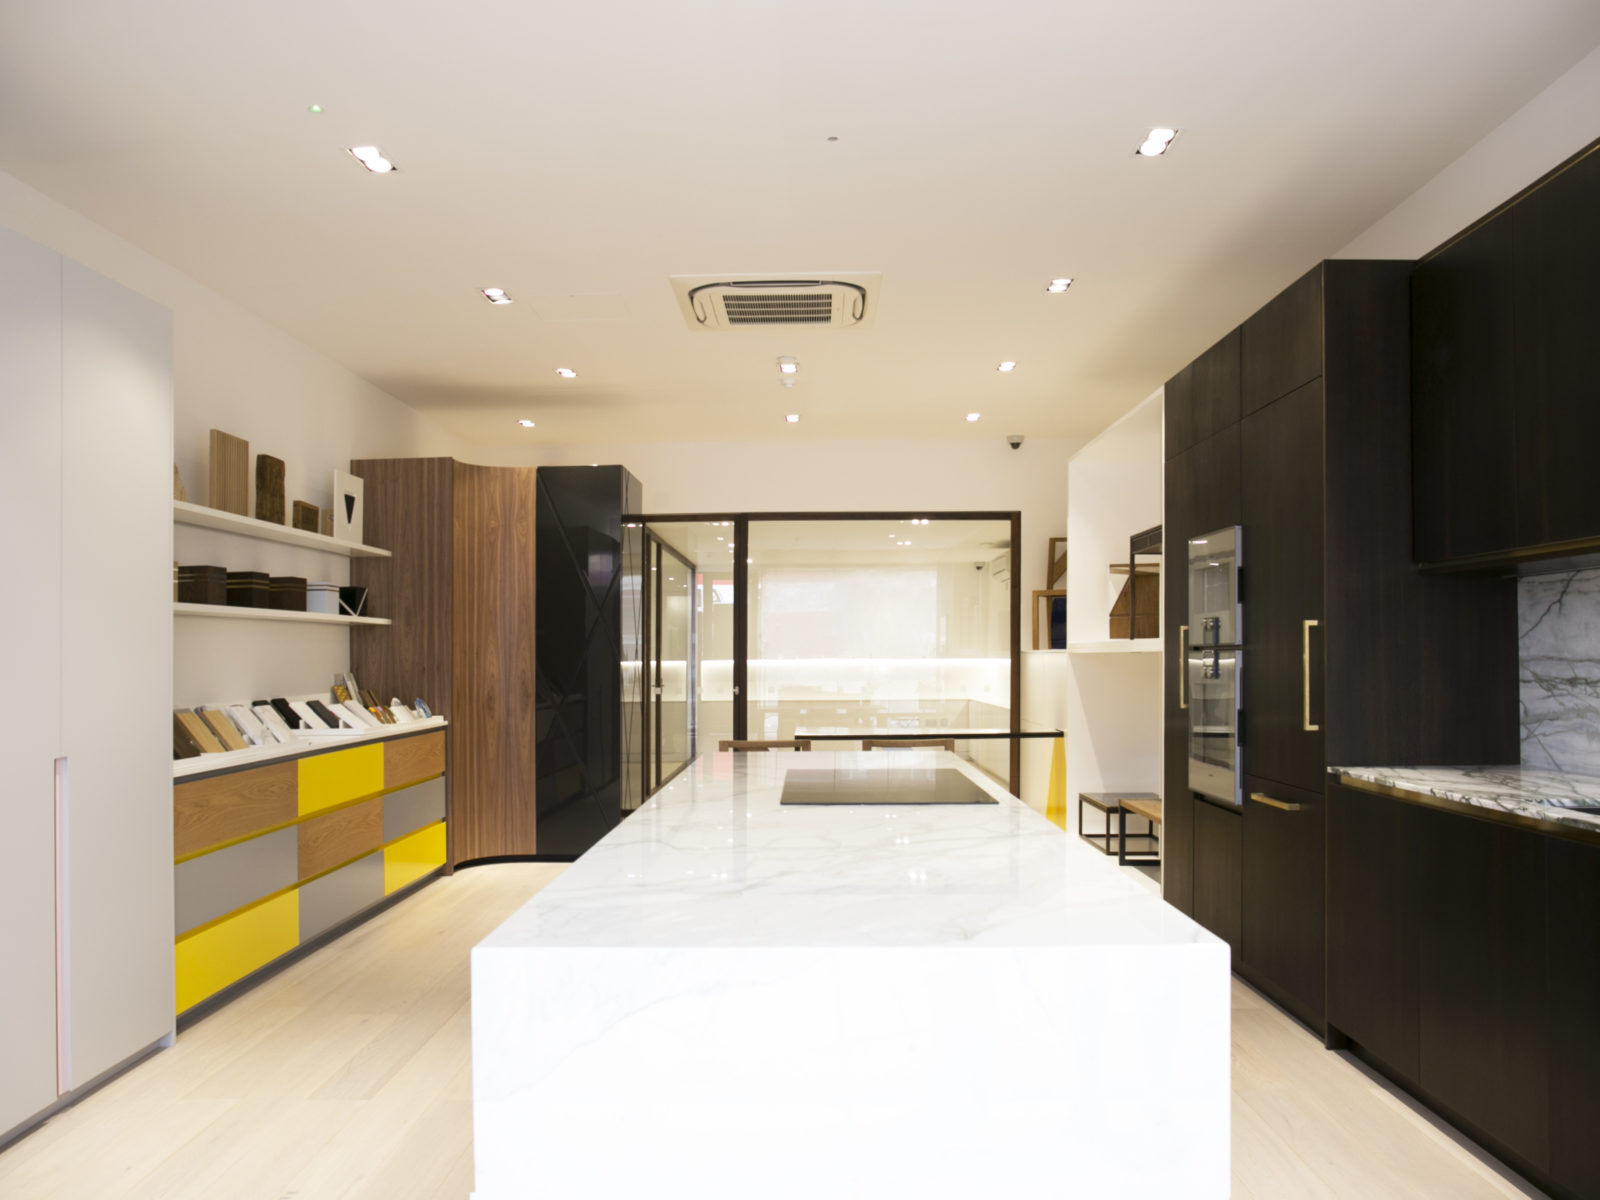 St James Interiors showroom